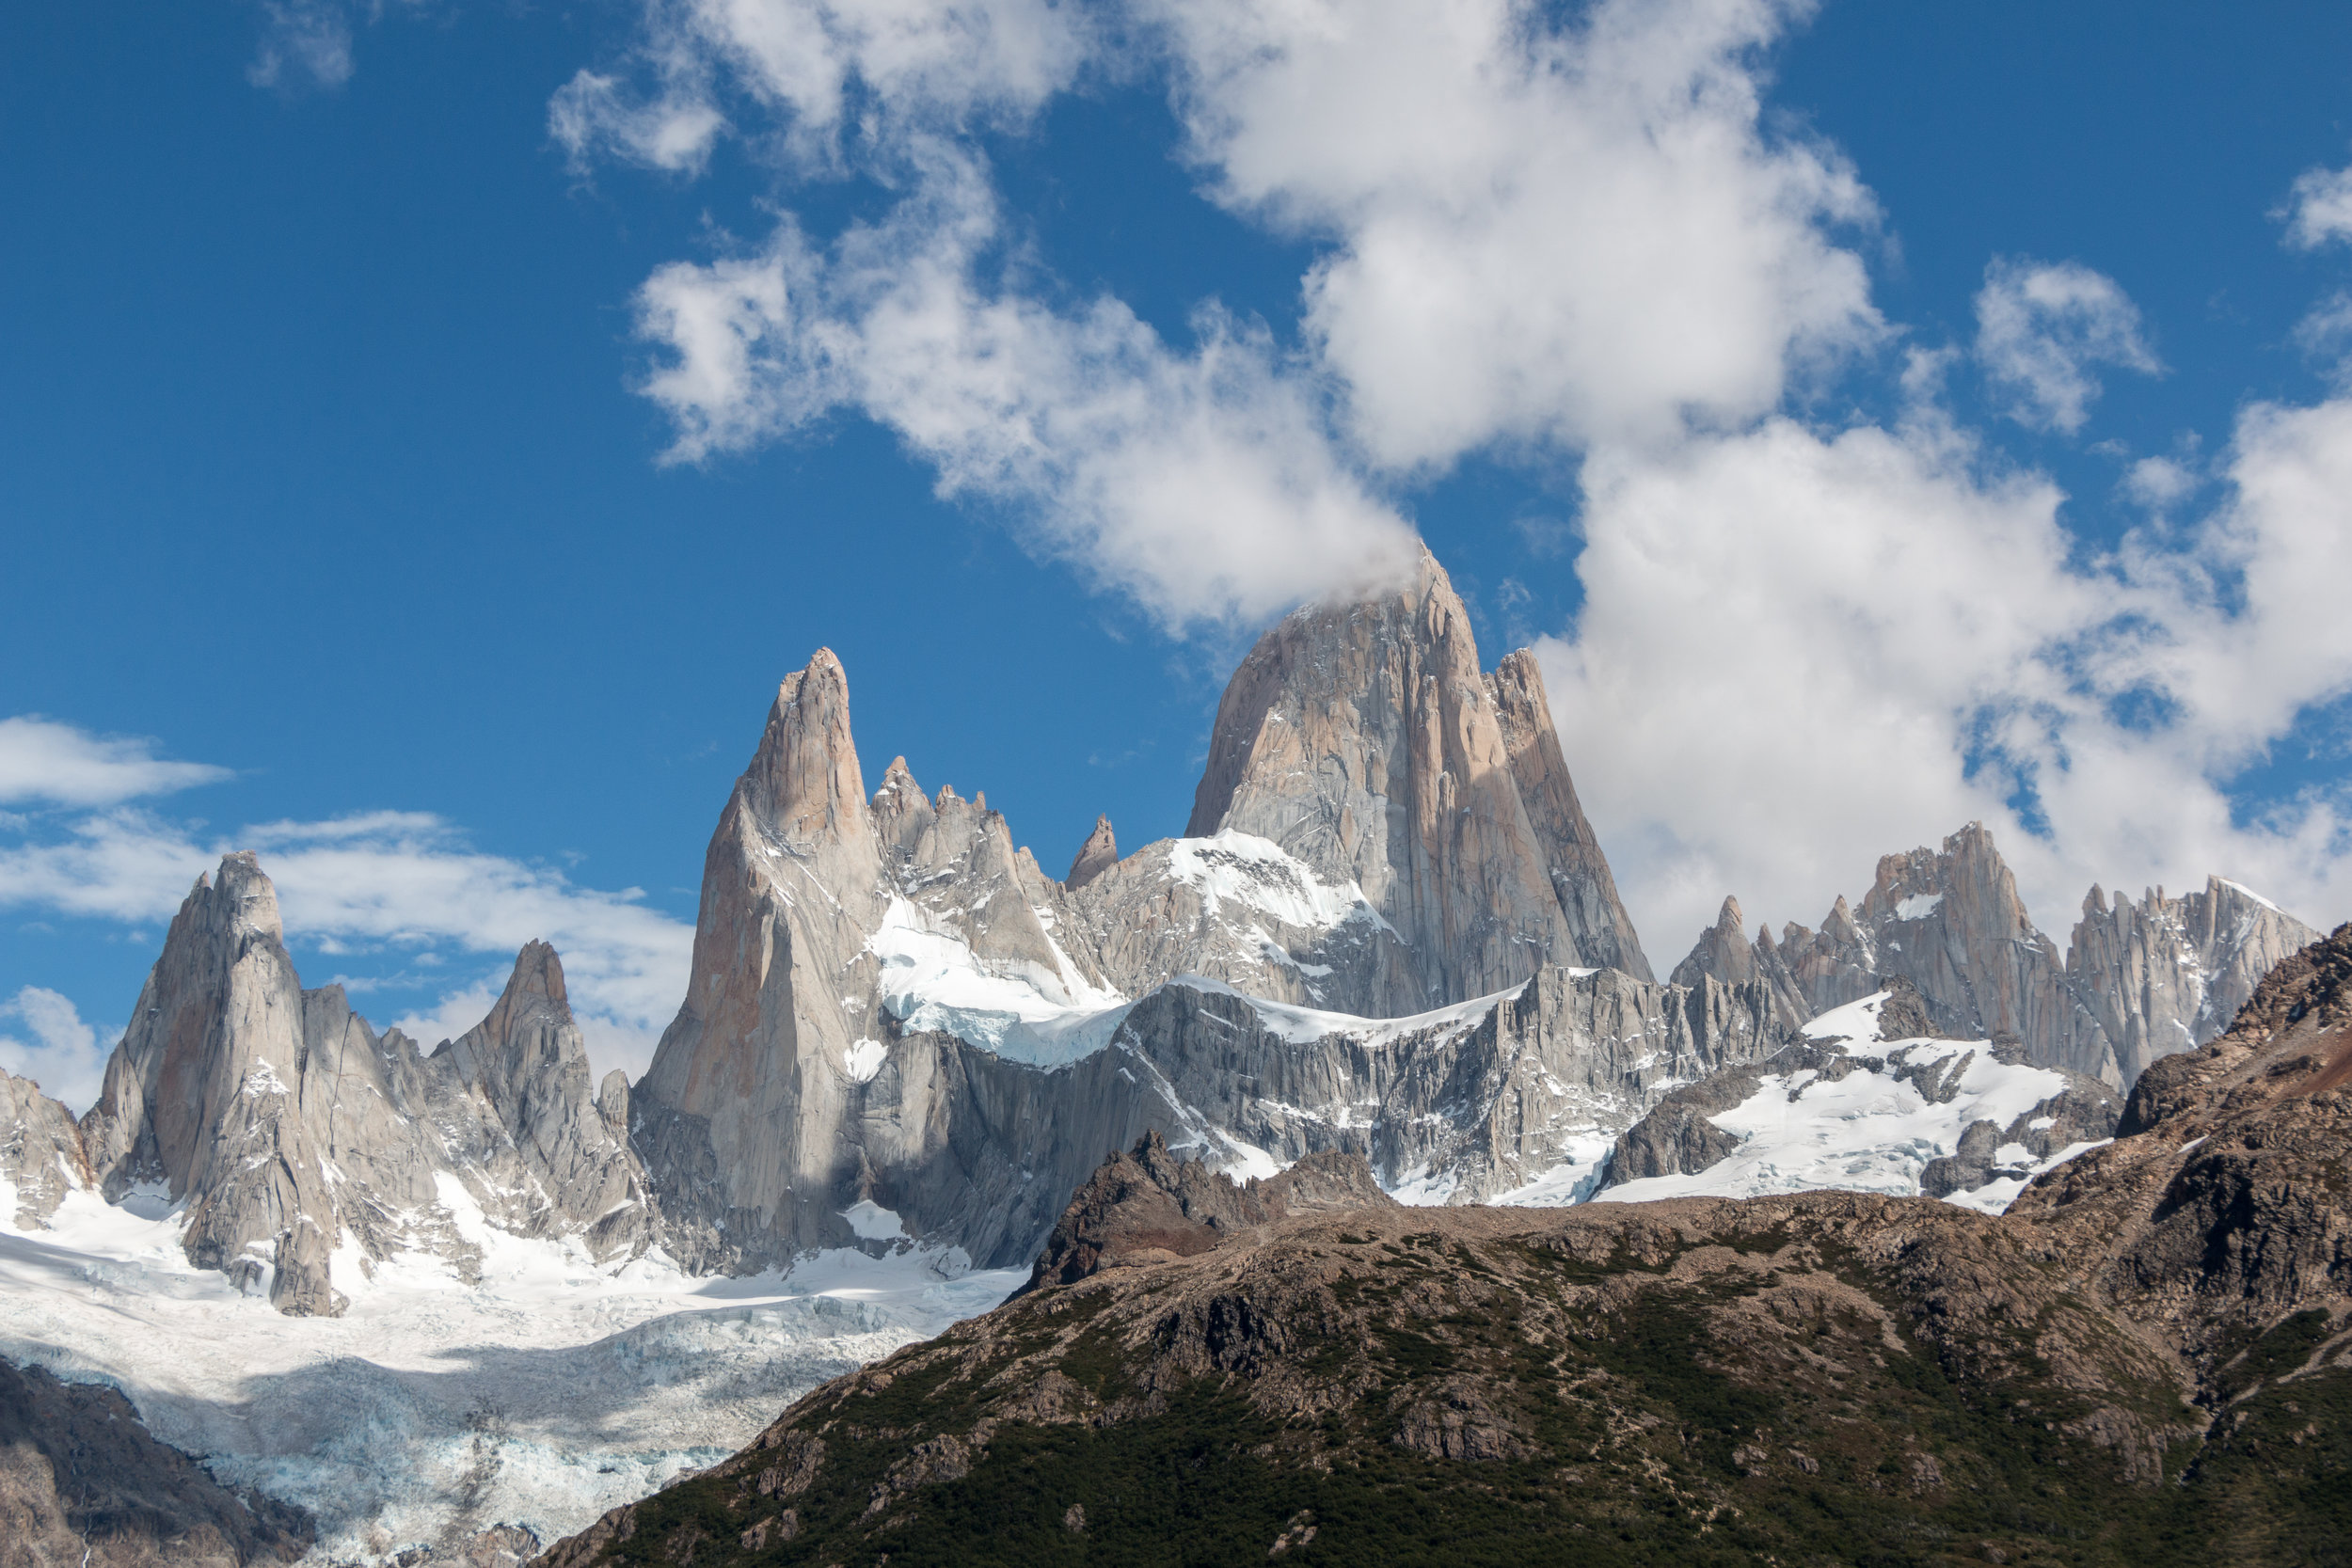 Mountain in Argentina